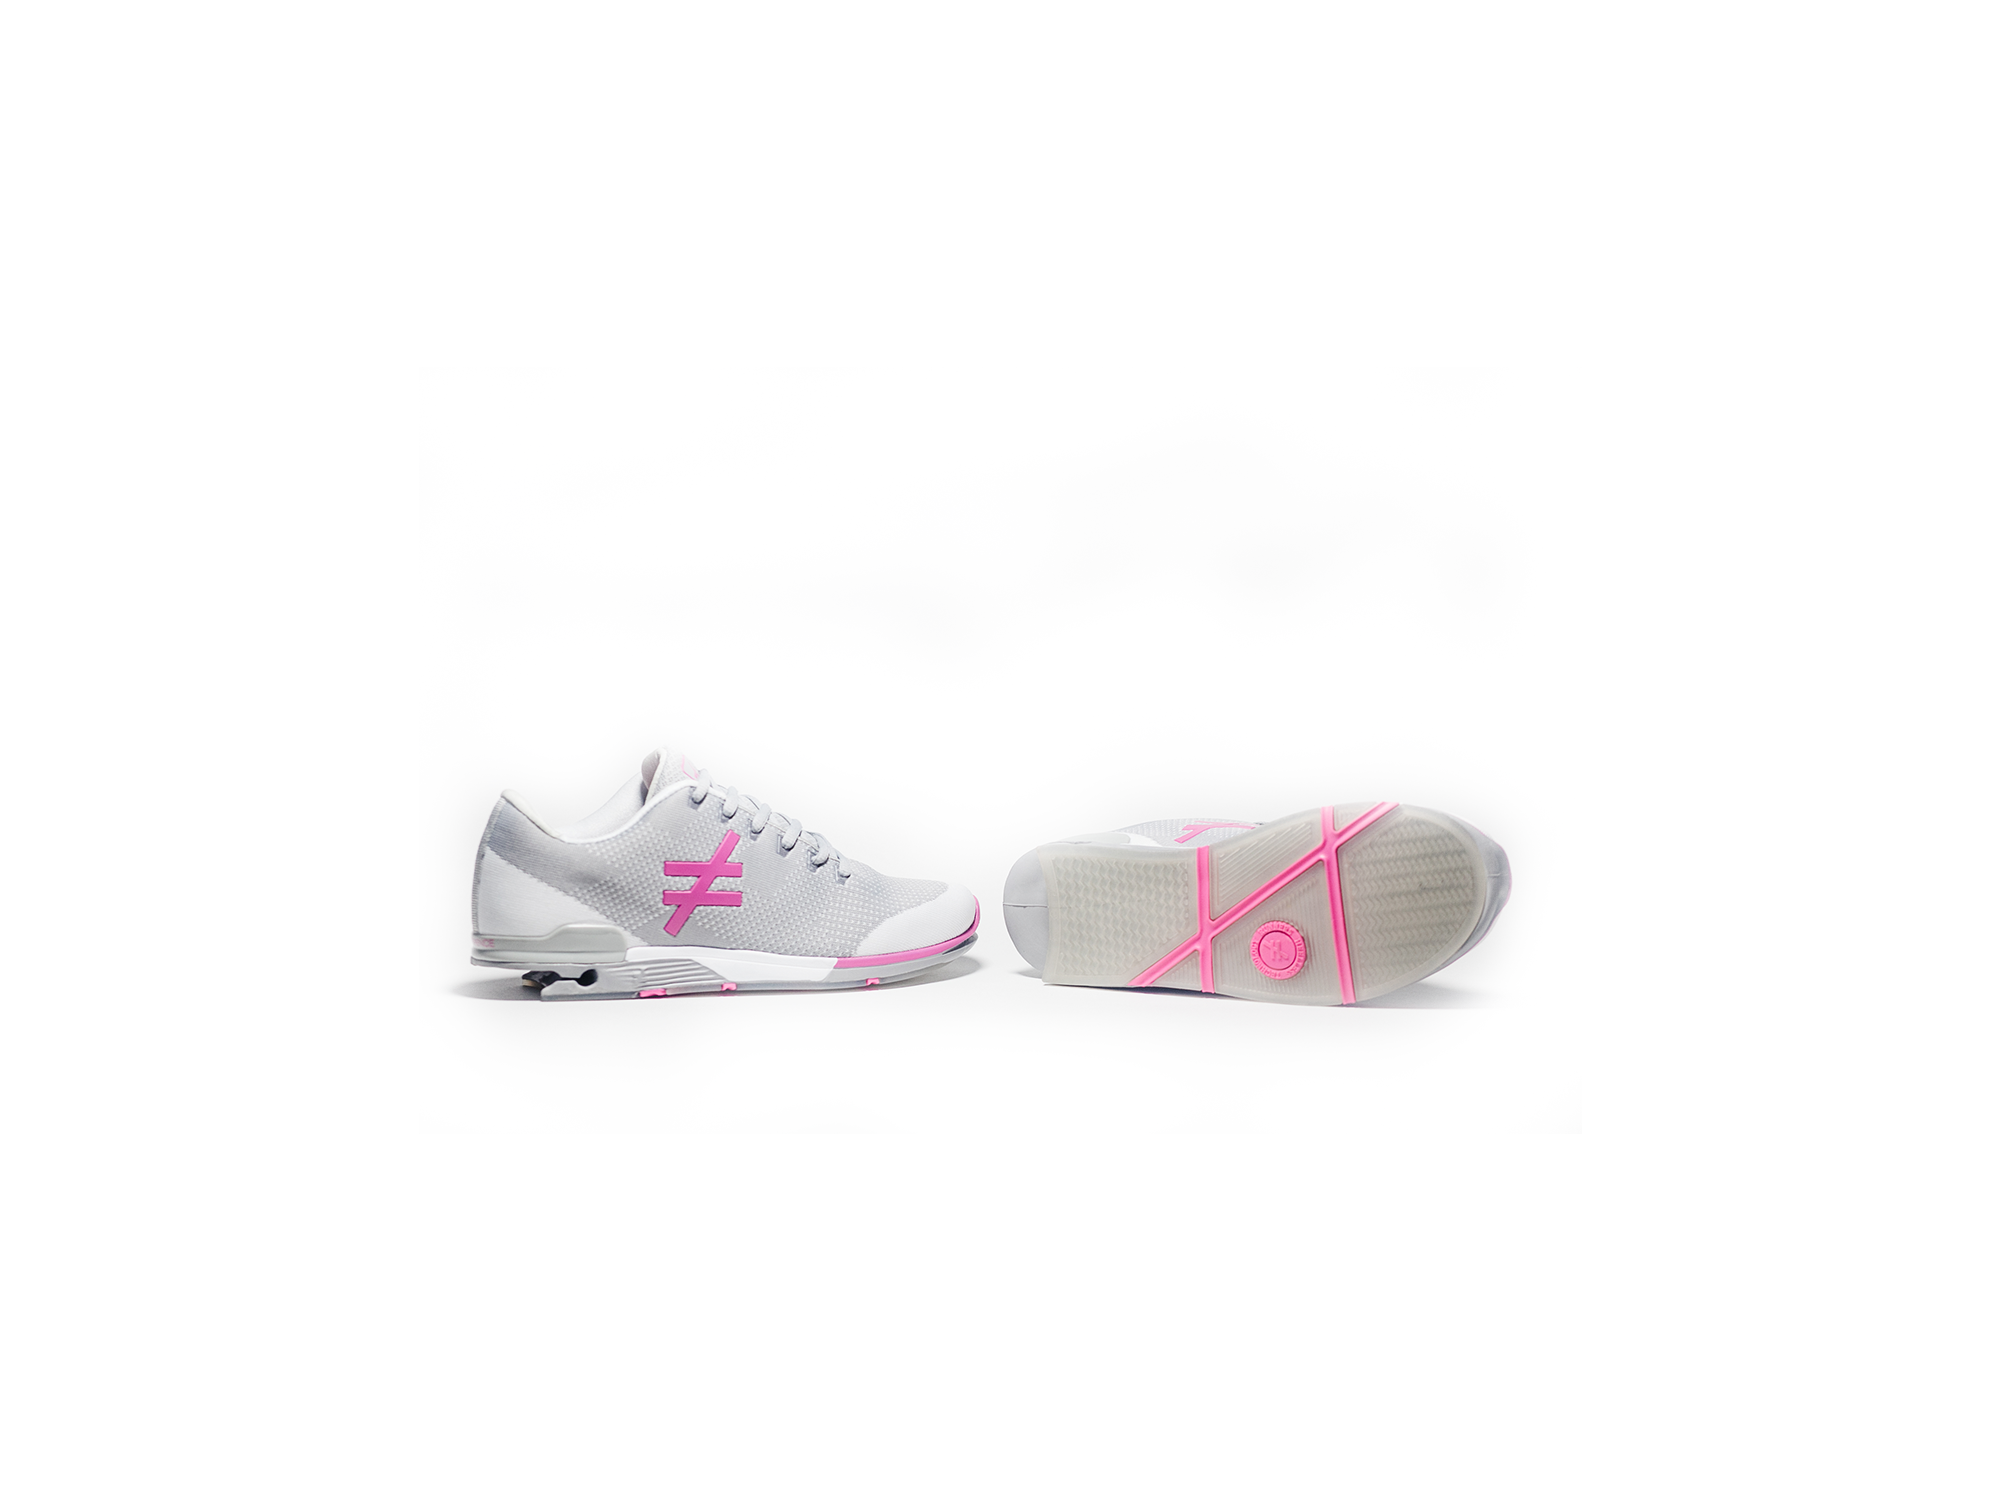 side and sole angle pair of the DIFFERENCE Runners heelless shoes pink